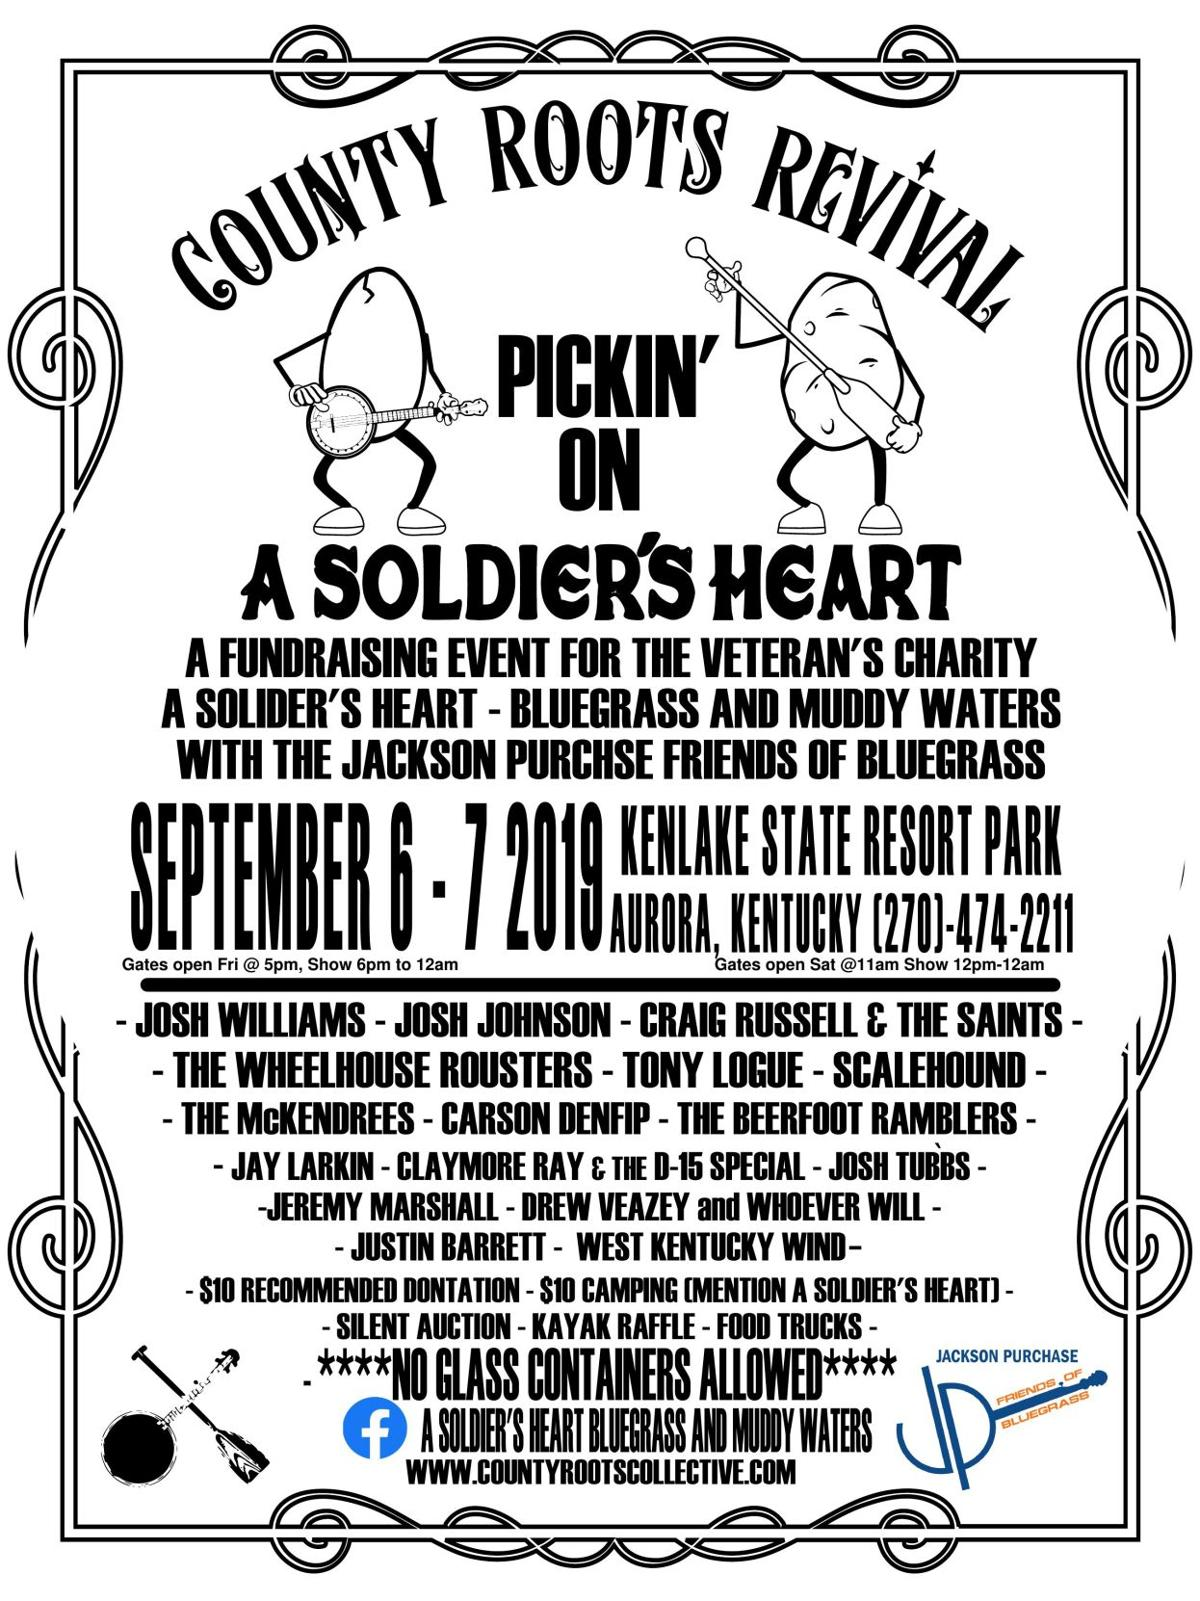 Pickin' On A Soldier's Heart